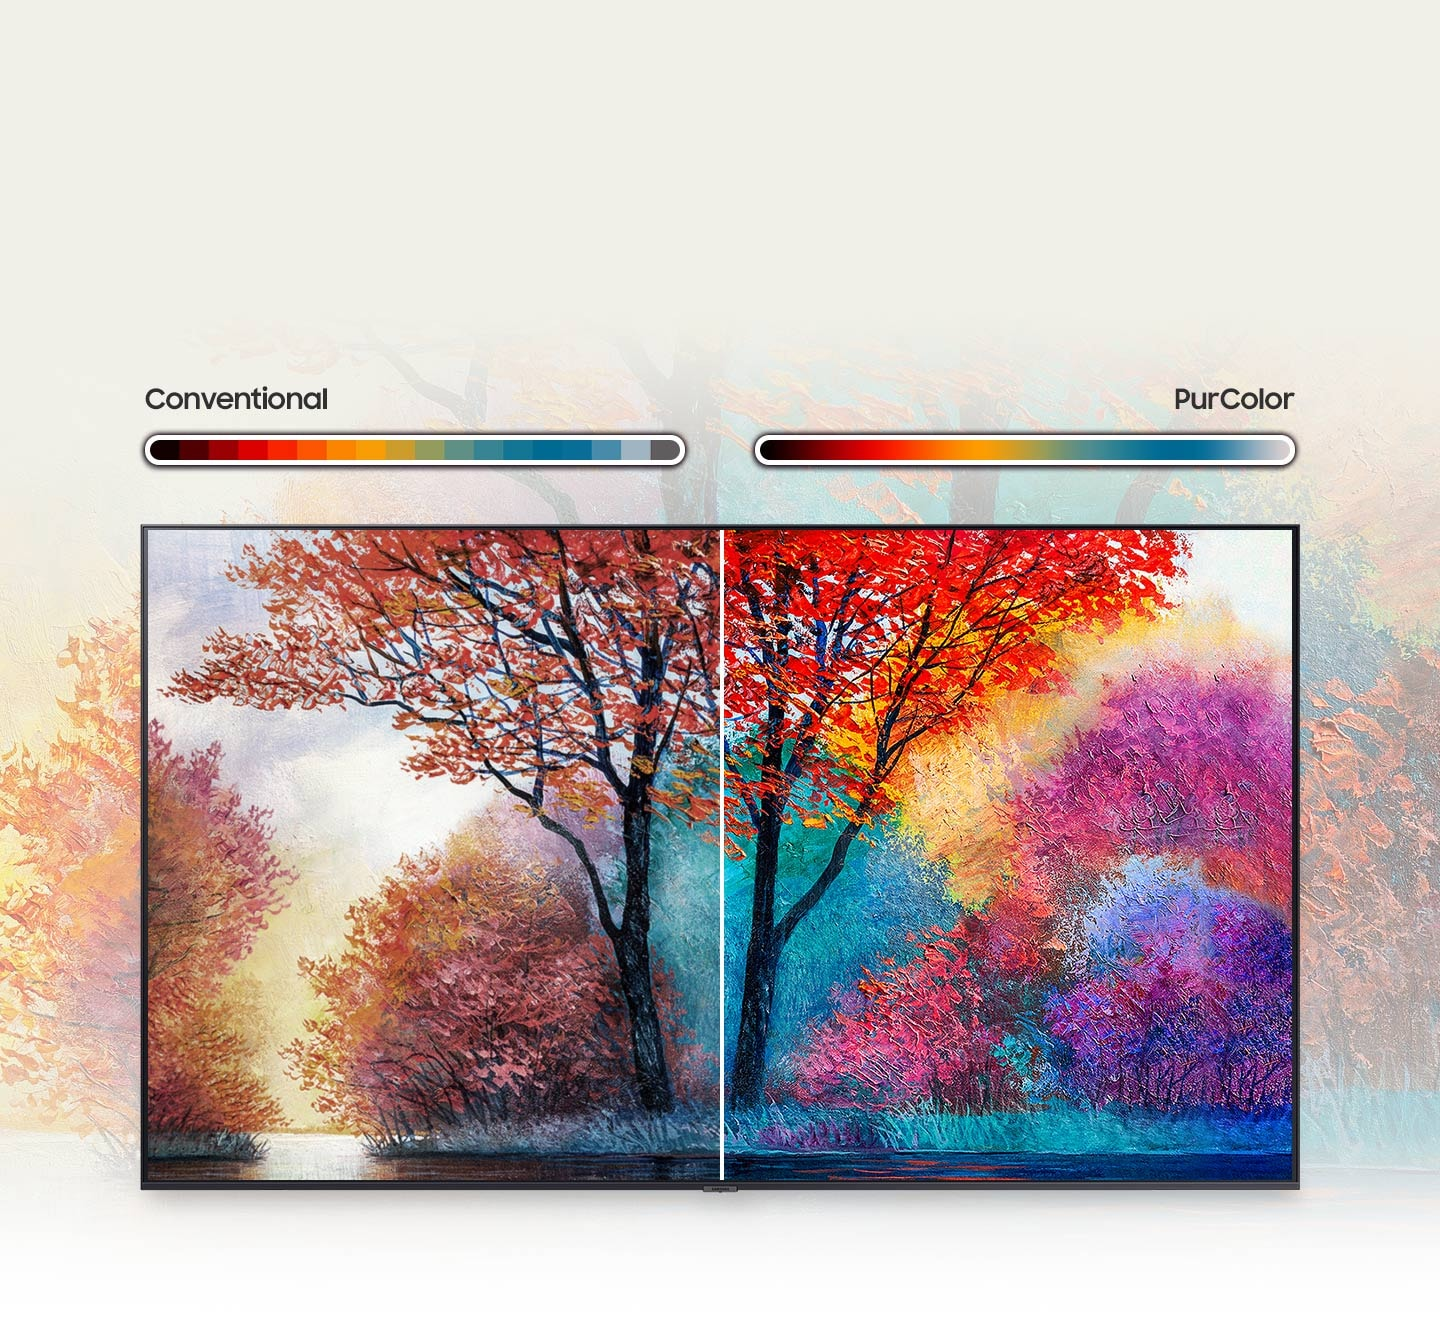 The painting on the right compared to the conventional on the left shows a wider range of color production due to PurColor technology.